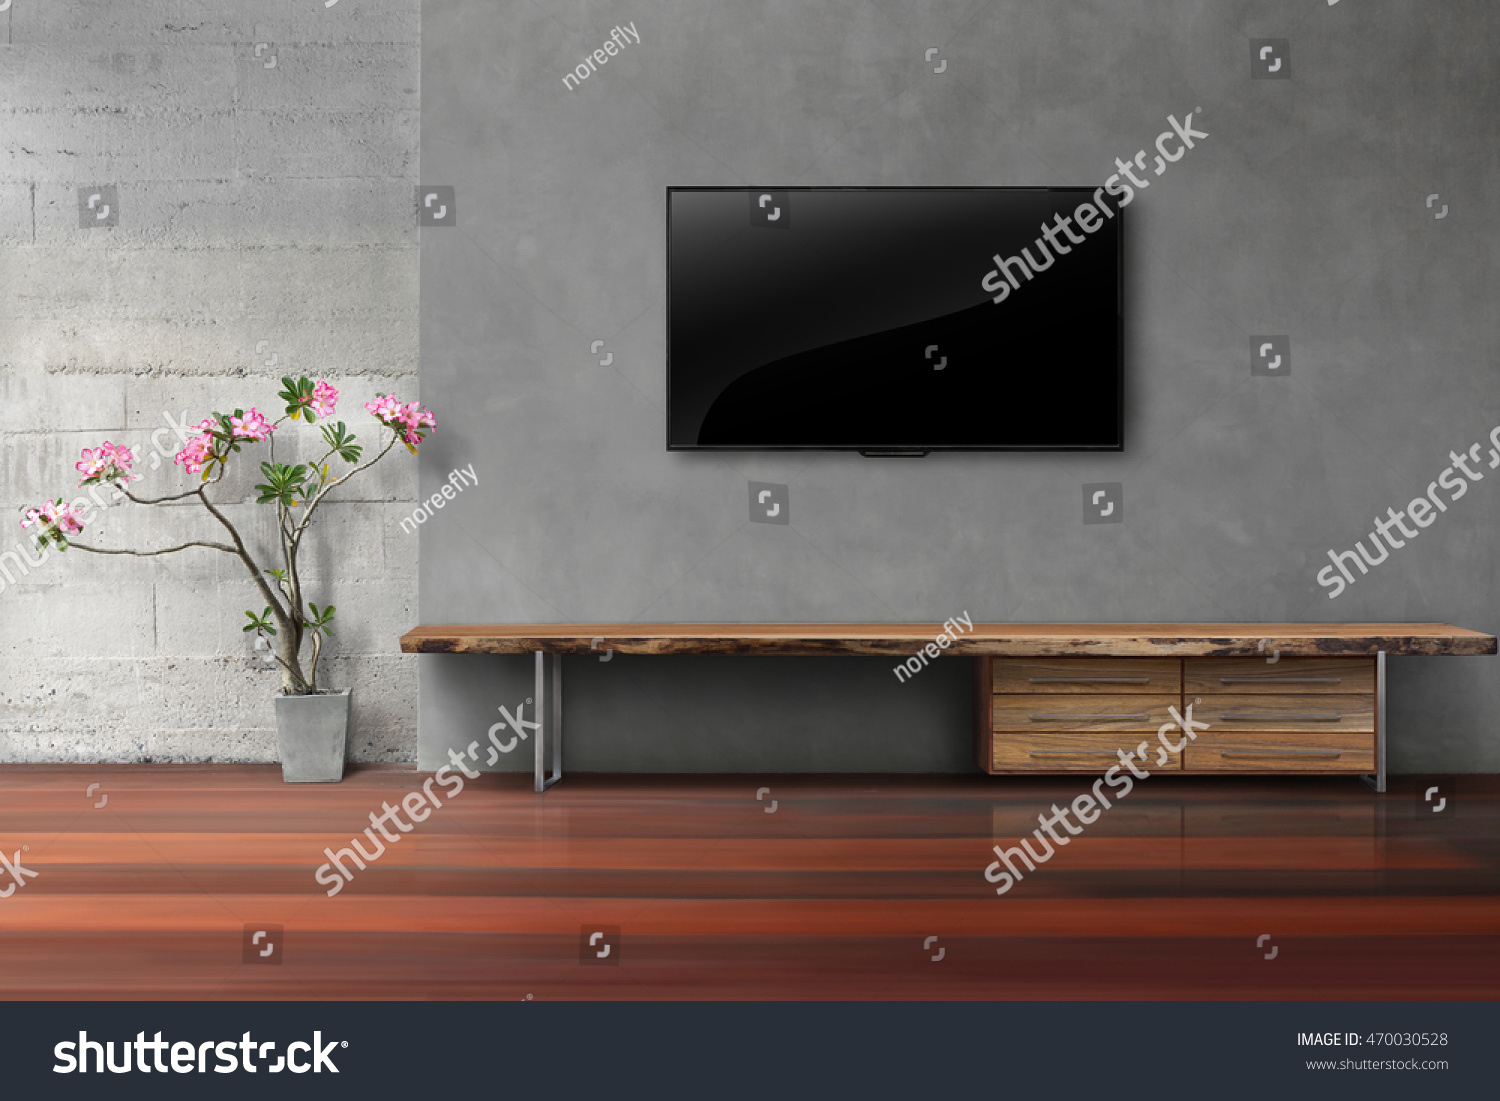 Living Room Led Tv On Concrete Wall With Empty Wooden Stand 470030528. Full resolution  picture, nominally Width 1500 Height 1101 pixels, picture with #A32863.